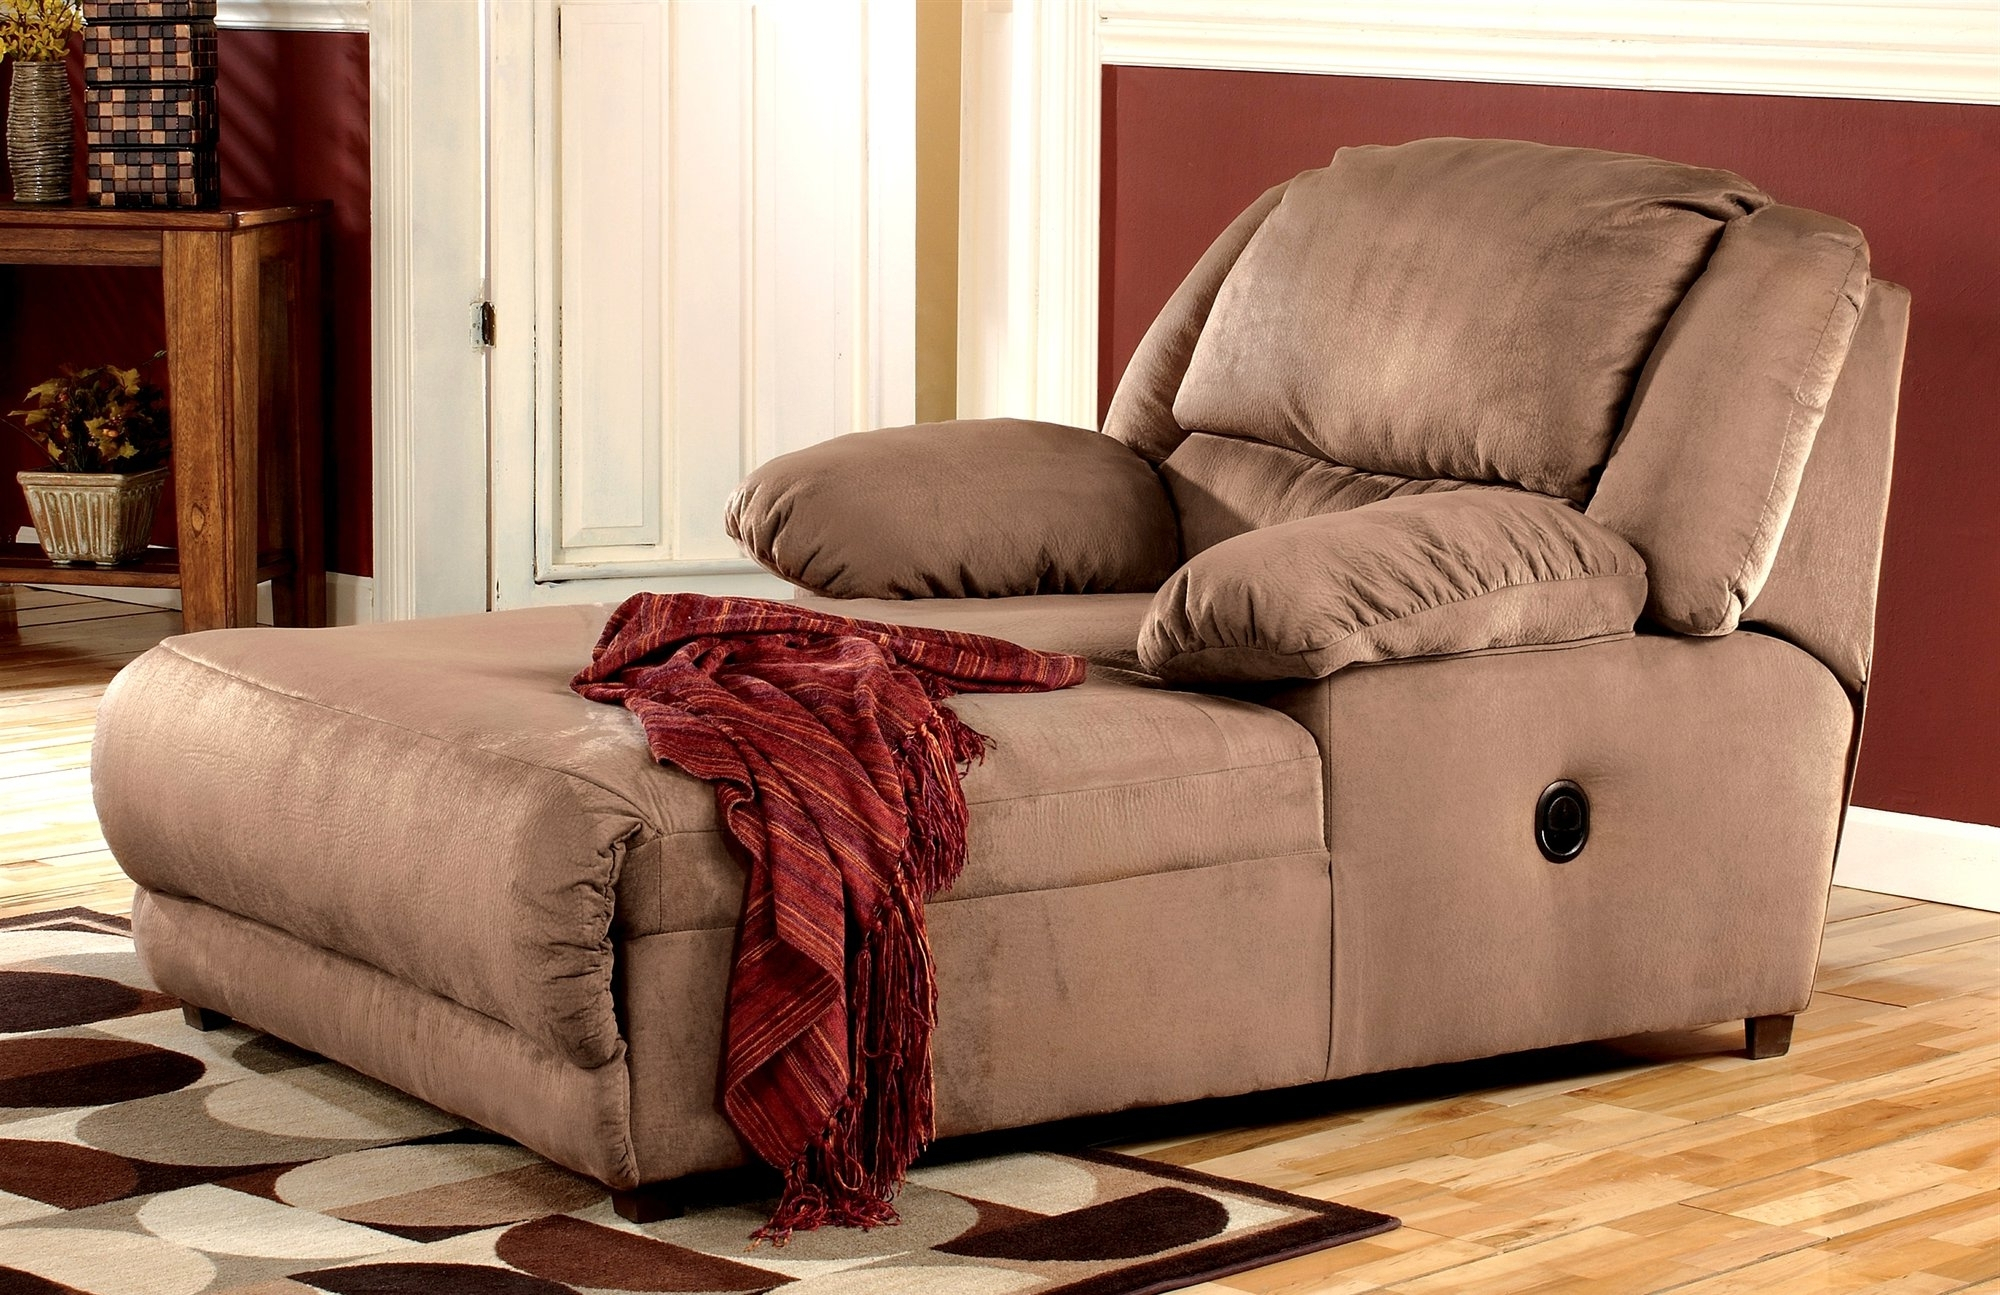 Famous Lounge Chair : Velvet Chaise Lounge Chair Chaise Longue For Sale Inside Comfy Chaise Lounges (View 8 of 15)